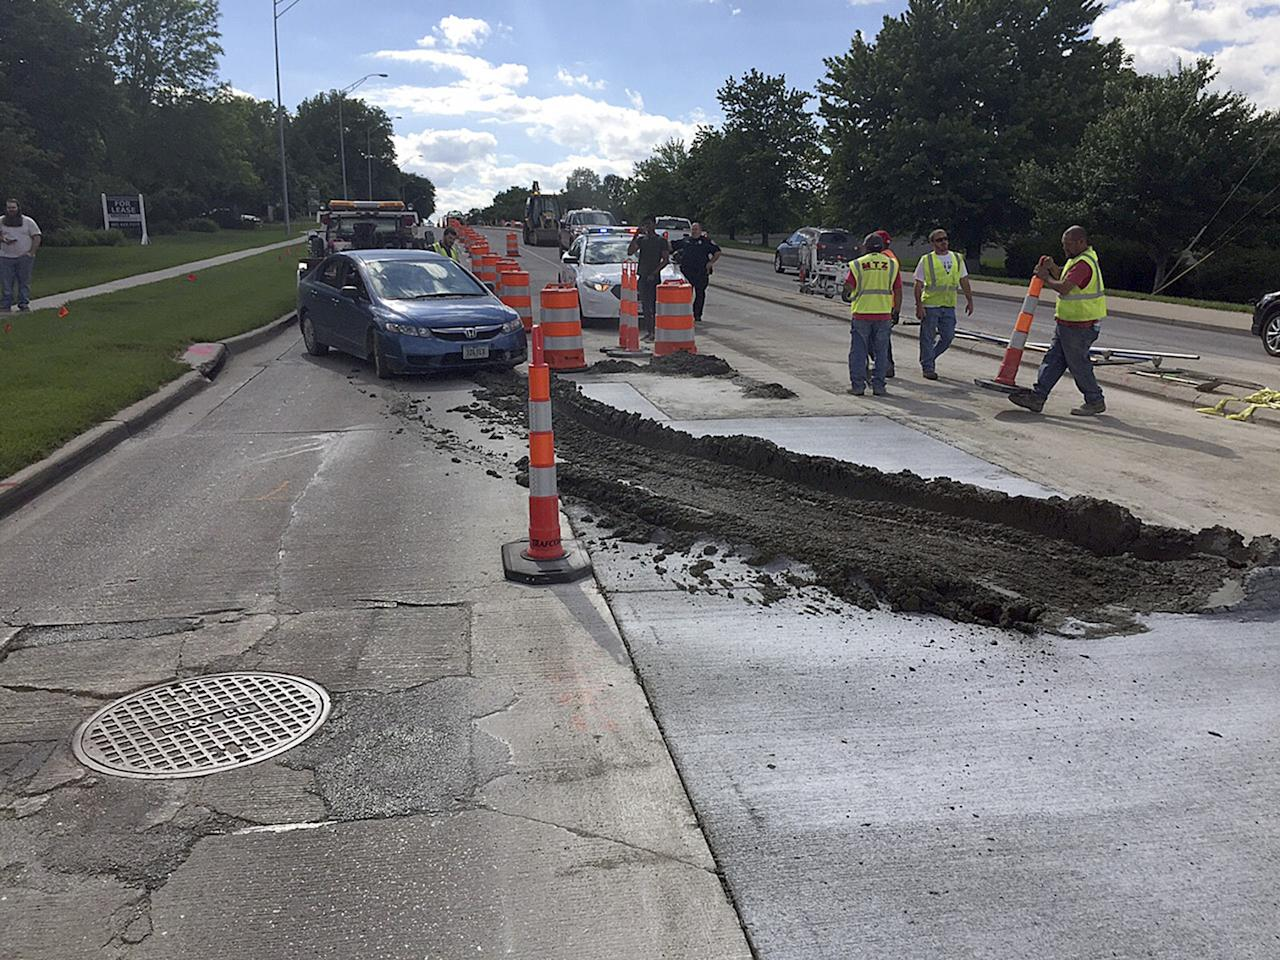 <p>Foto: Mike Palm, The City of Lincoln Public Works and Utilities Department via AP </p>